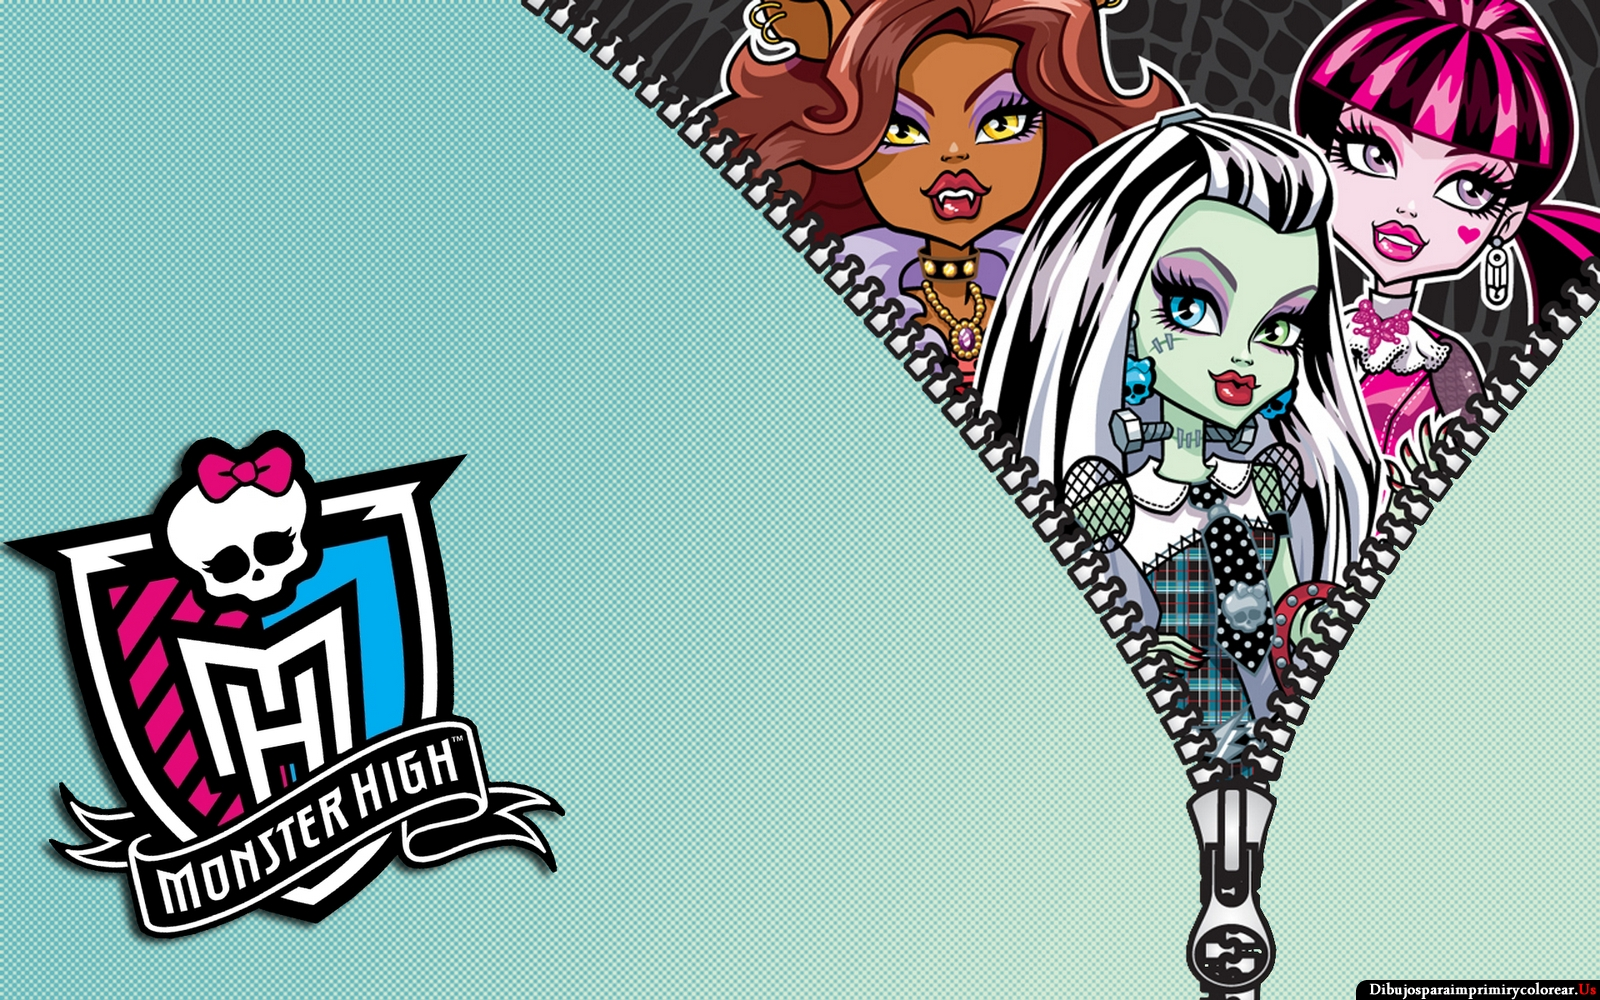 Fondos De Pantalla De Monster High: Fondos De Pantalla Monster High